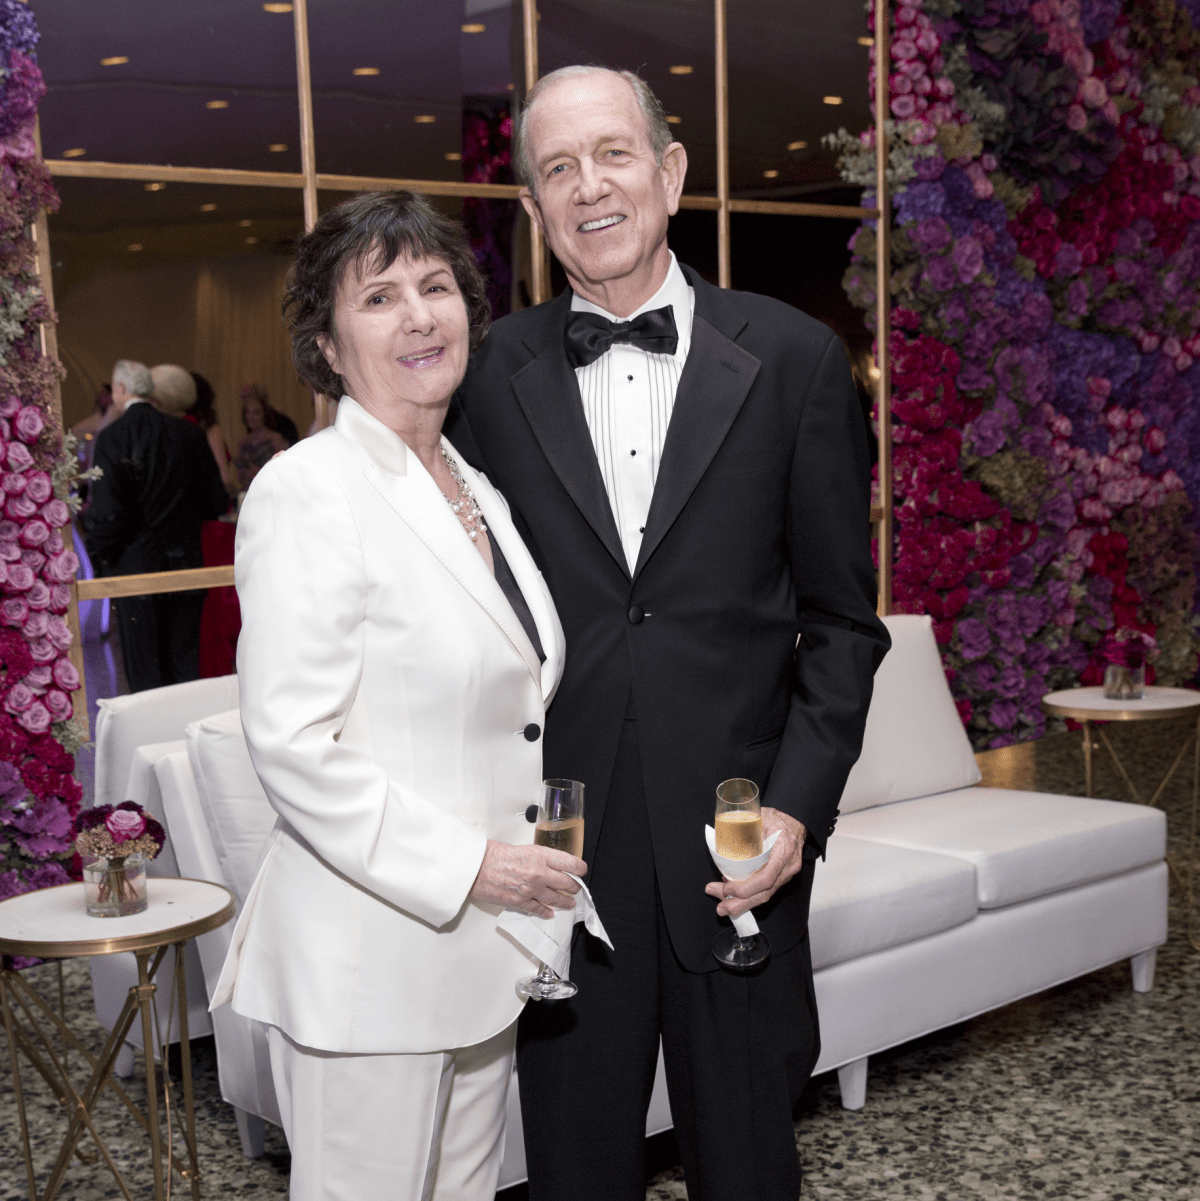 Leslie and Brad Bucher at MFAH Grand Gala Ball